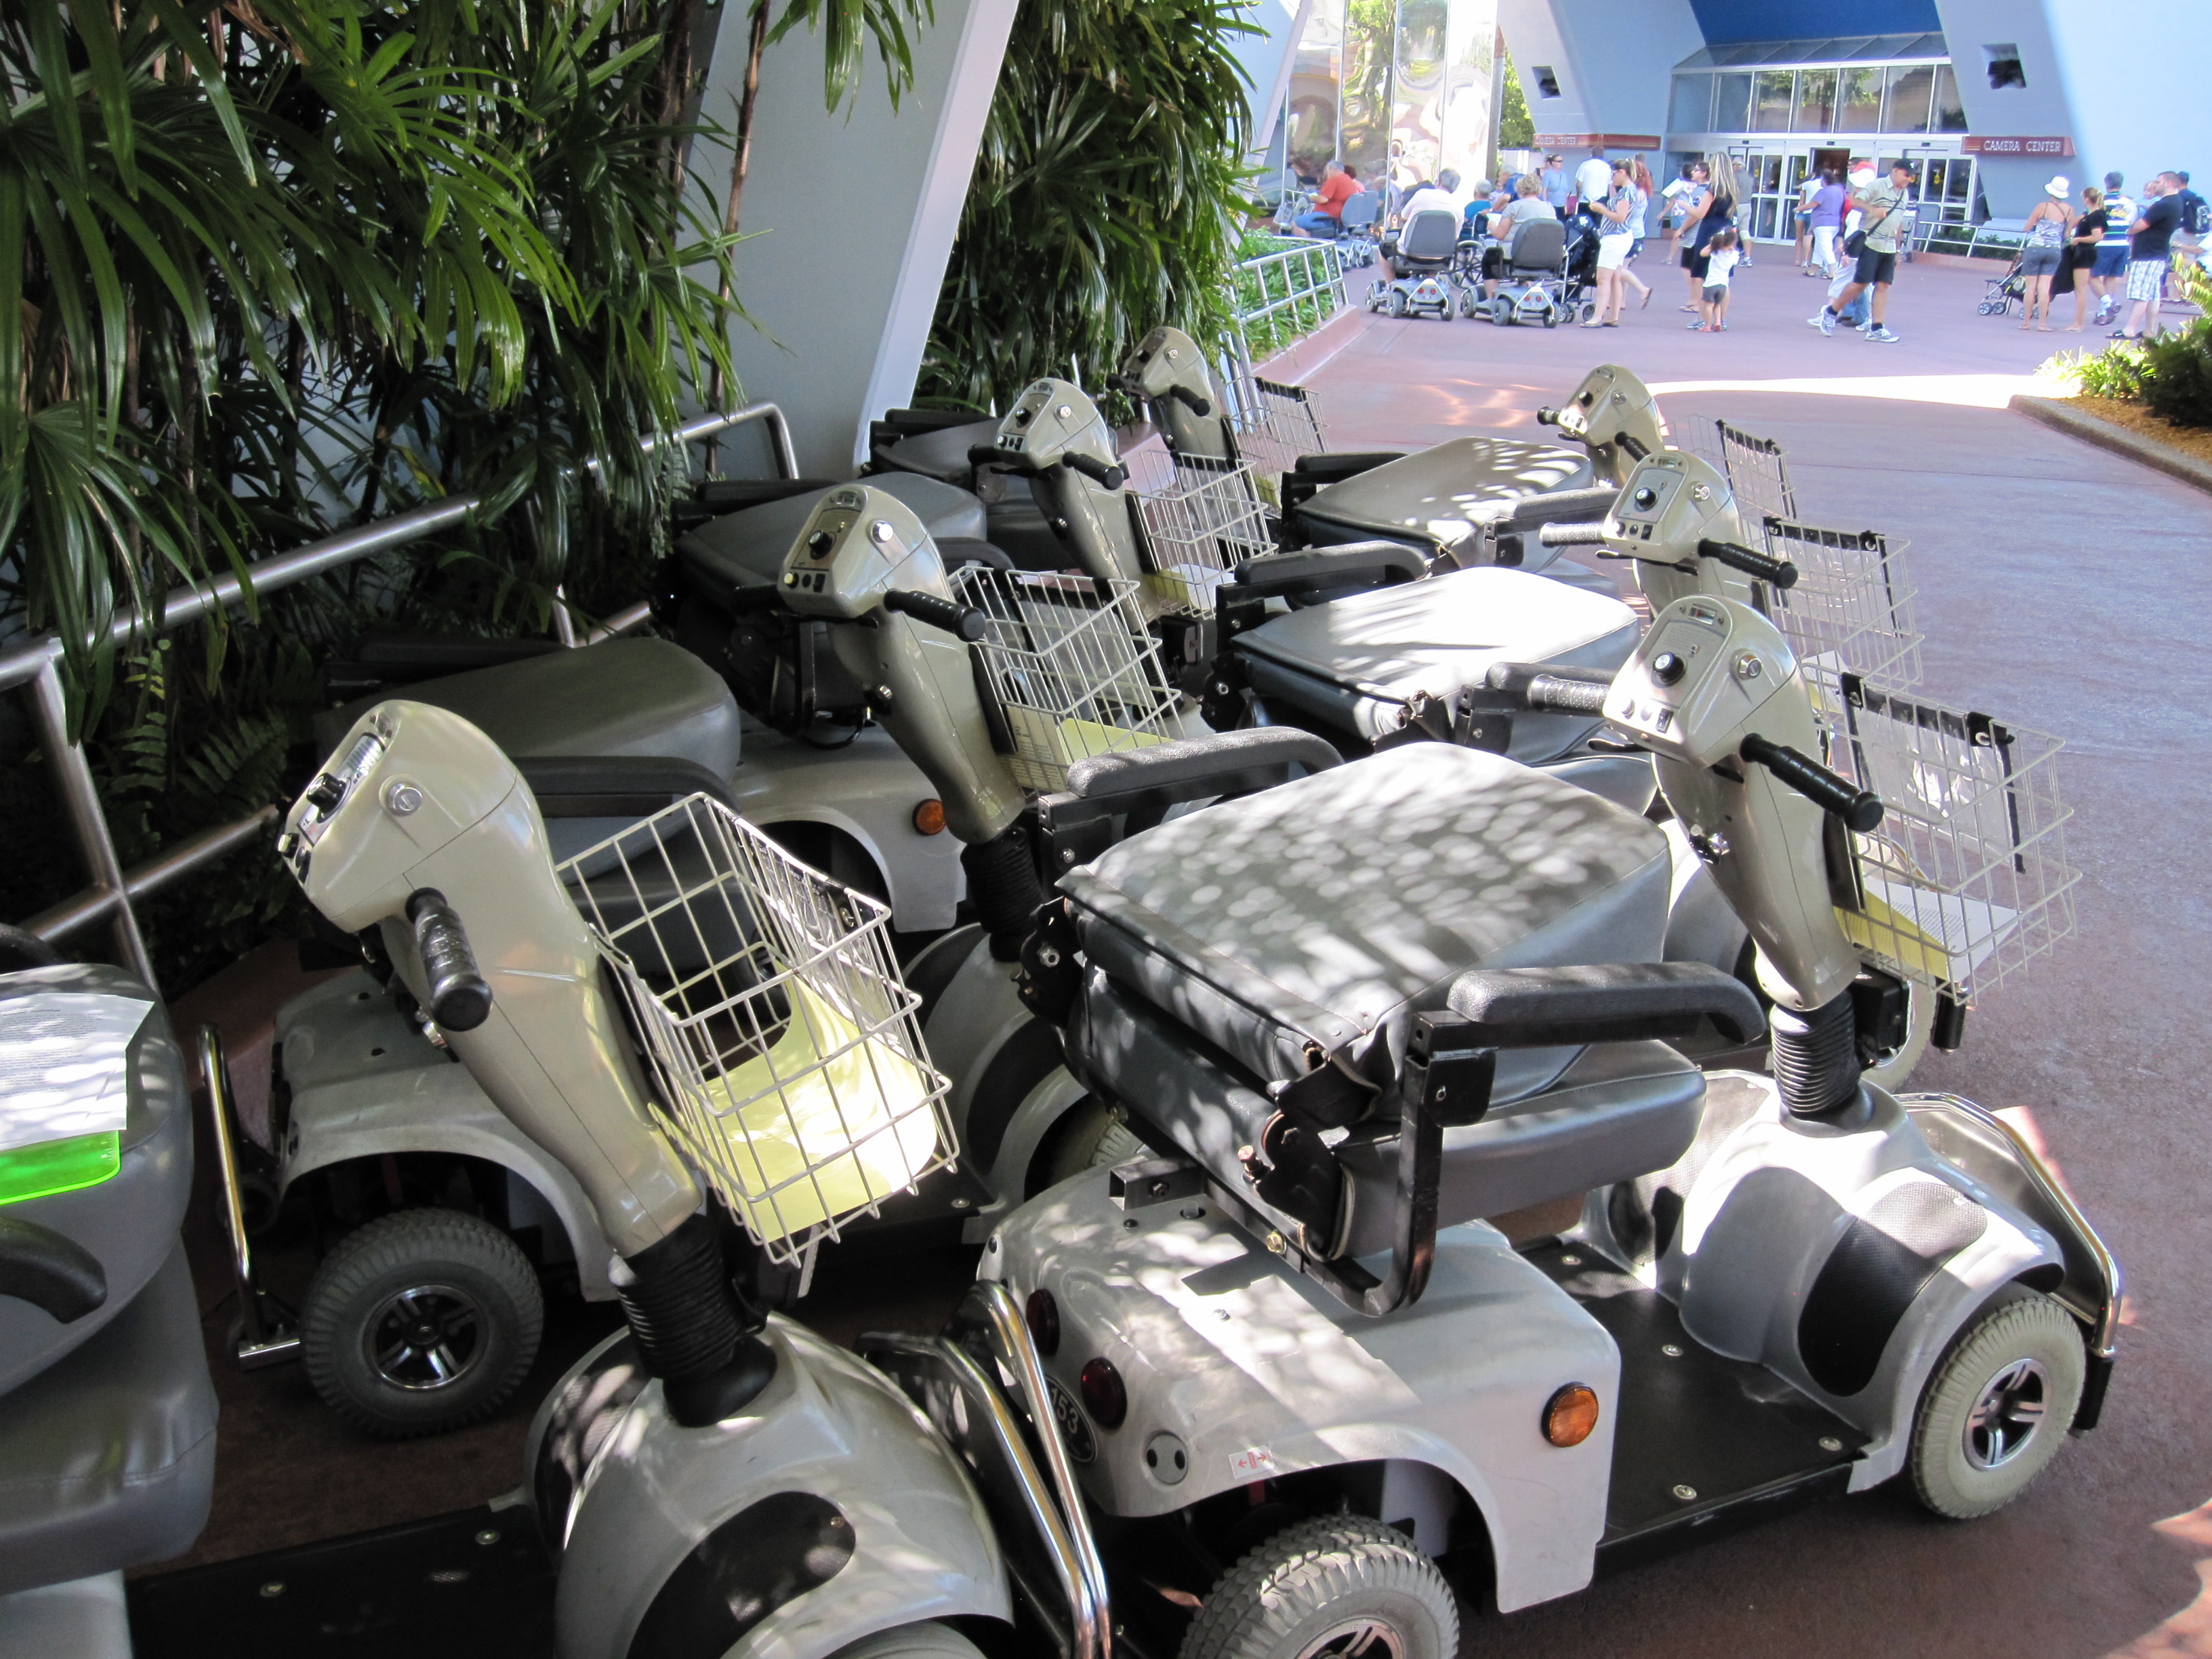 Wheel Chair Rentals Wheelchair And Ecv Rental At Walt Disney World Resort